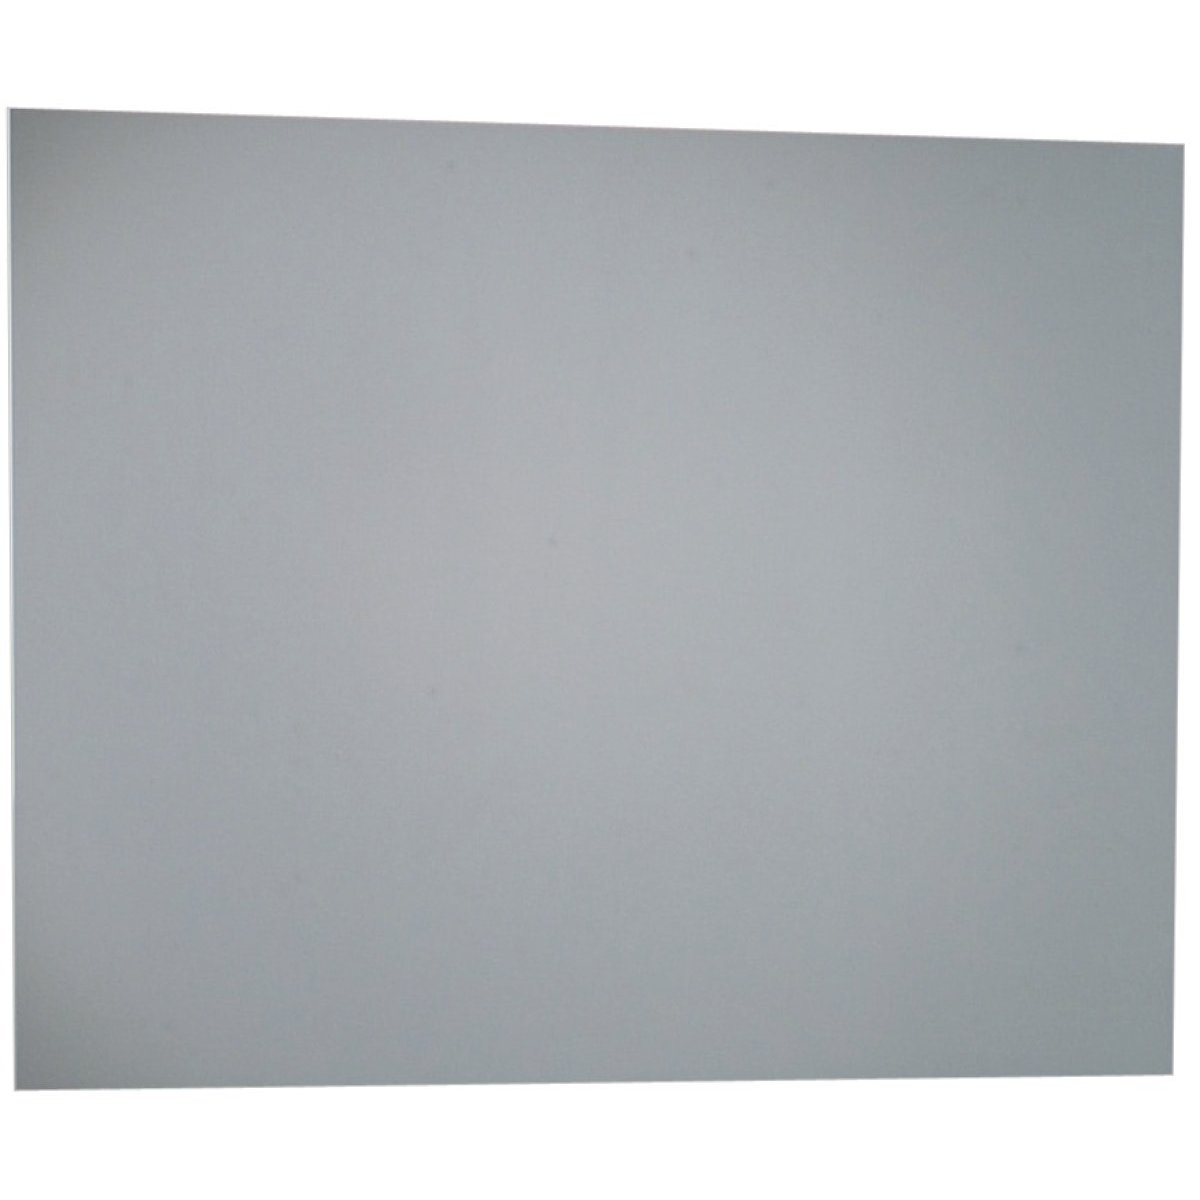 Miroir pep 39 s 77x60 cm for Boutique miroir